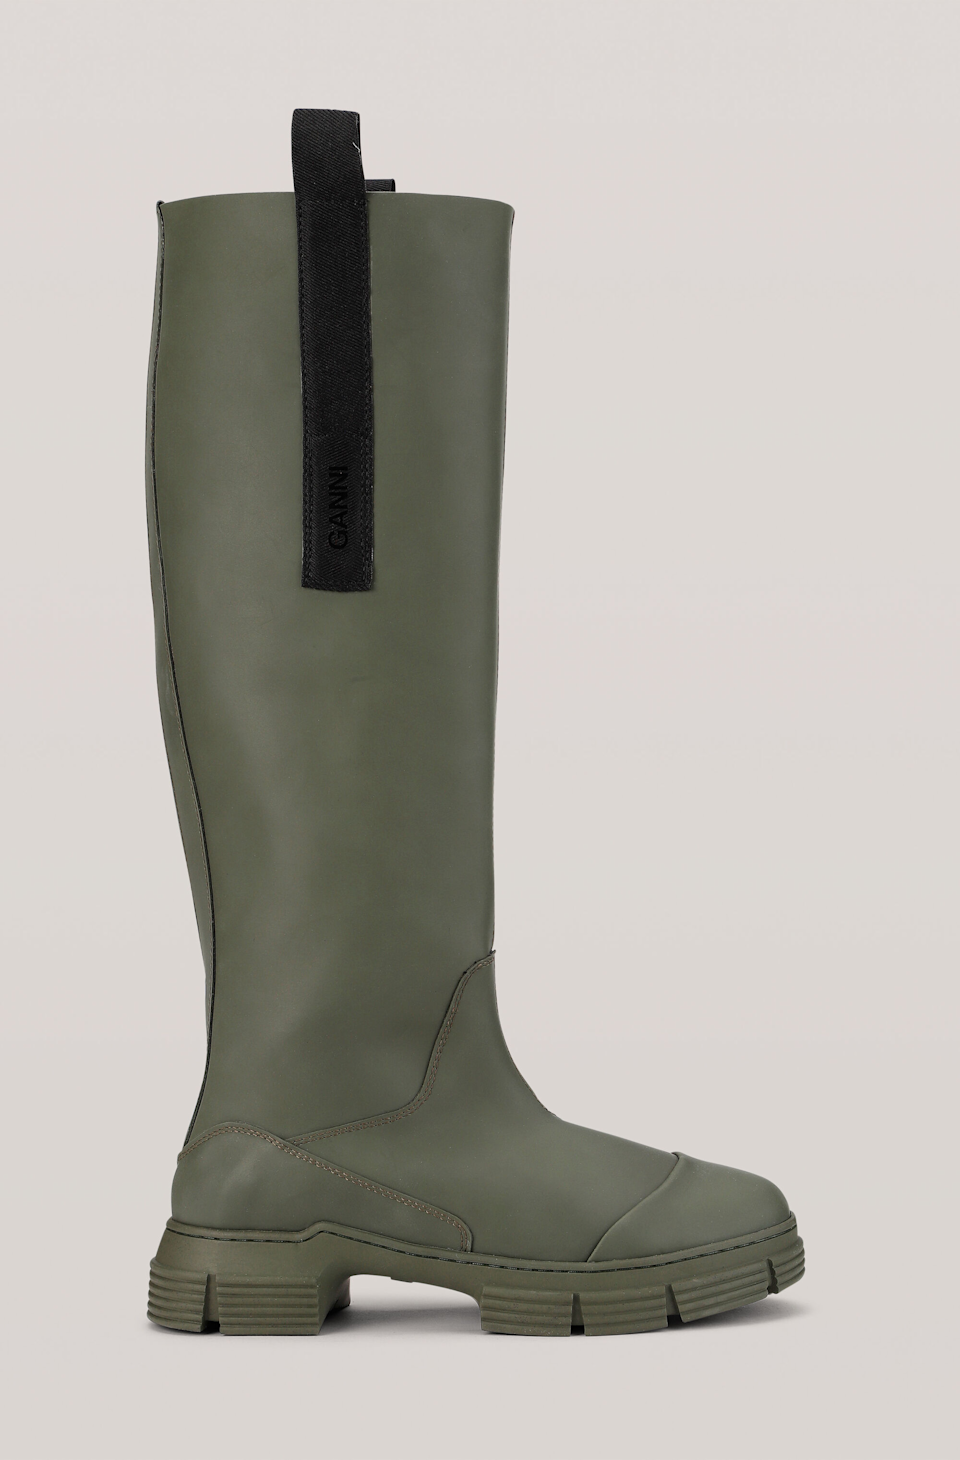 "<br><br><strong>Ganni</strong> Recycled Rubber Country Boot, $, available at <a href=""https://go.skimresources.com/?id=30283X879131&url=https%3A%2F%2Fwww.ganni.com%2Fus%2Frecycled-rubber-country-boot-S1222.html%3Fdwvar_S1222_color%3DKalamata%26quantity%3D1"" rel=""nofollow noopener"" target=""_blank"" data-ylk=""slk:Ganni"" class=""link rapid-noclick-resp"">Ganni</a>"